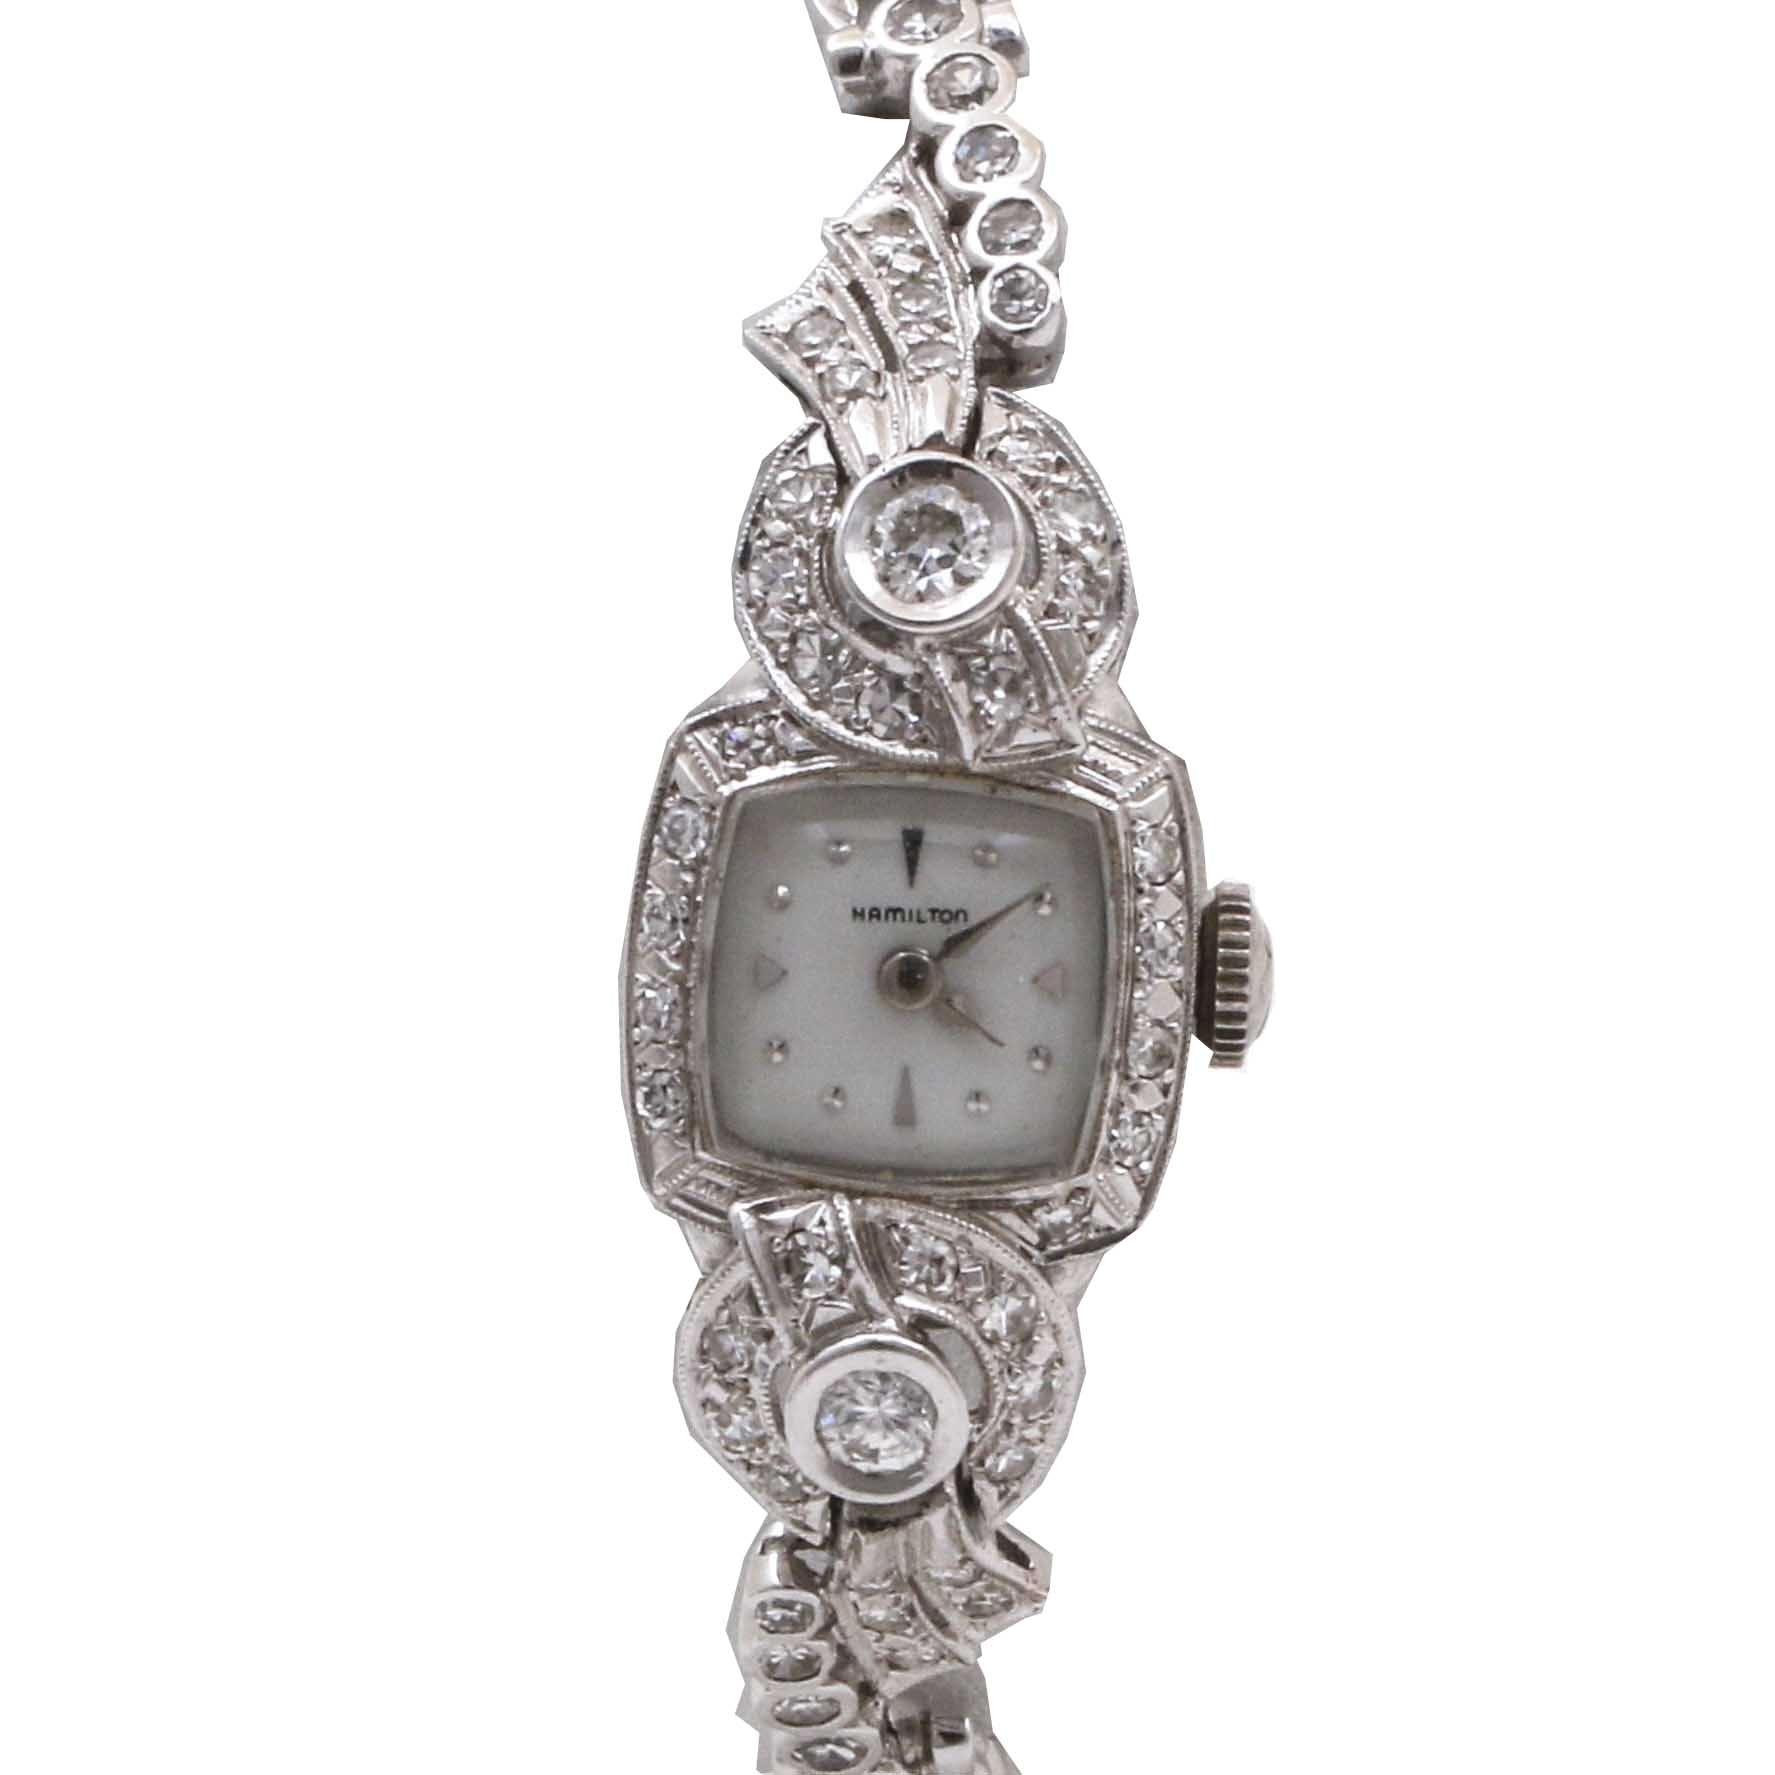 Hamilton 14K White Gold and 1.49 CTW Diamond Bracelet Wristwatch